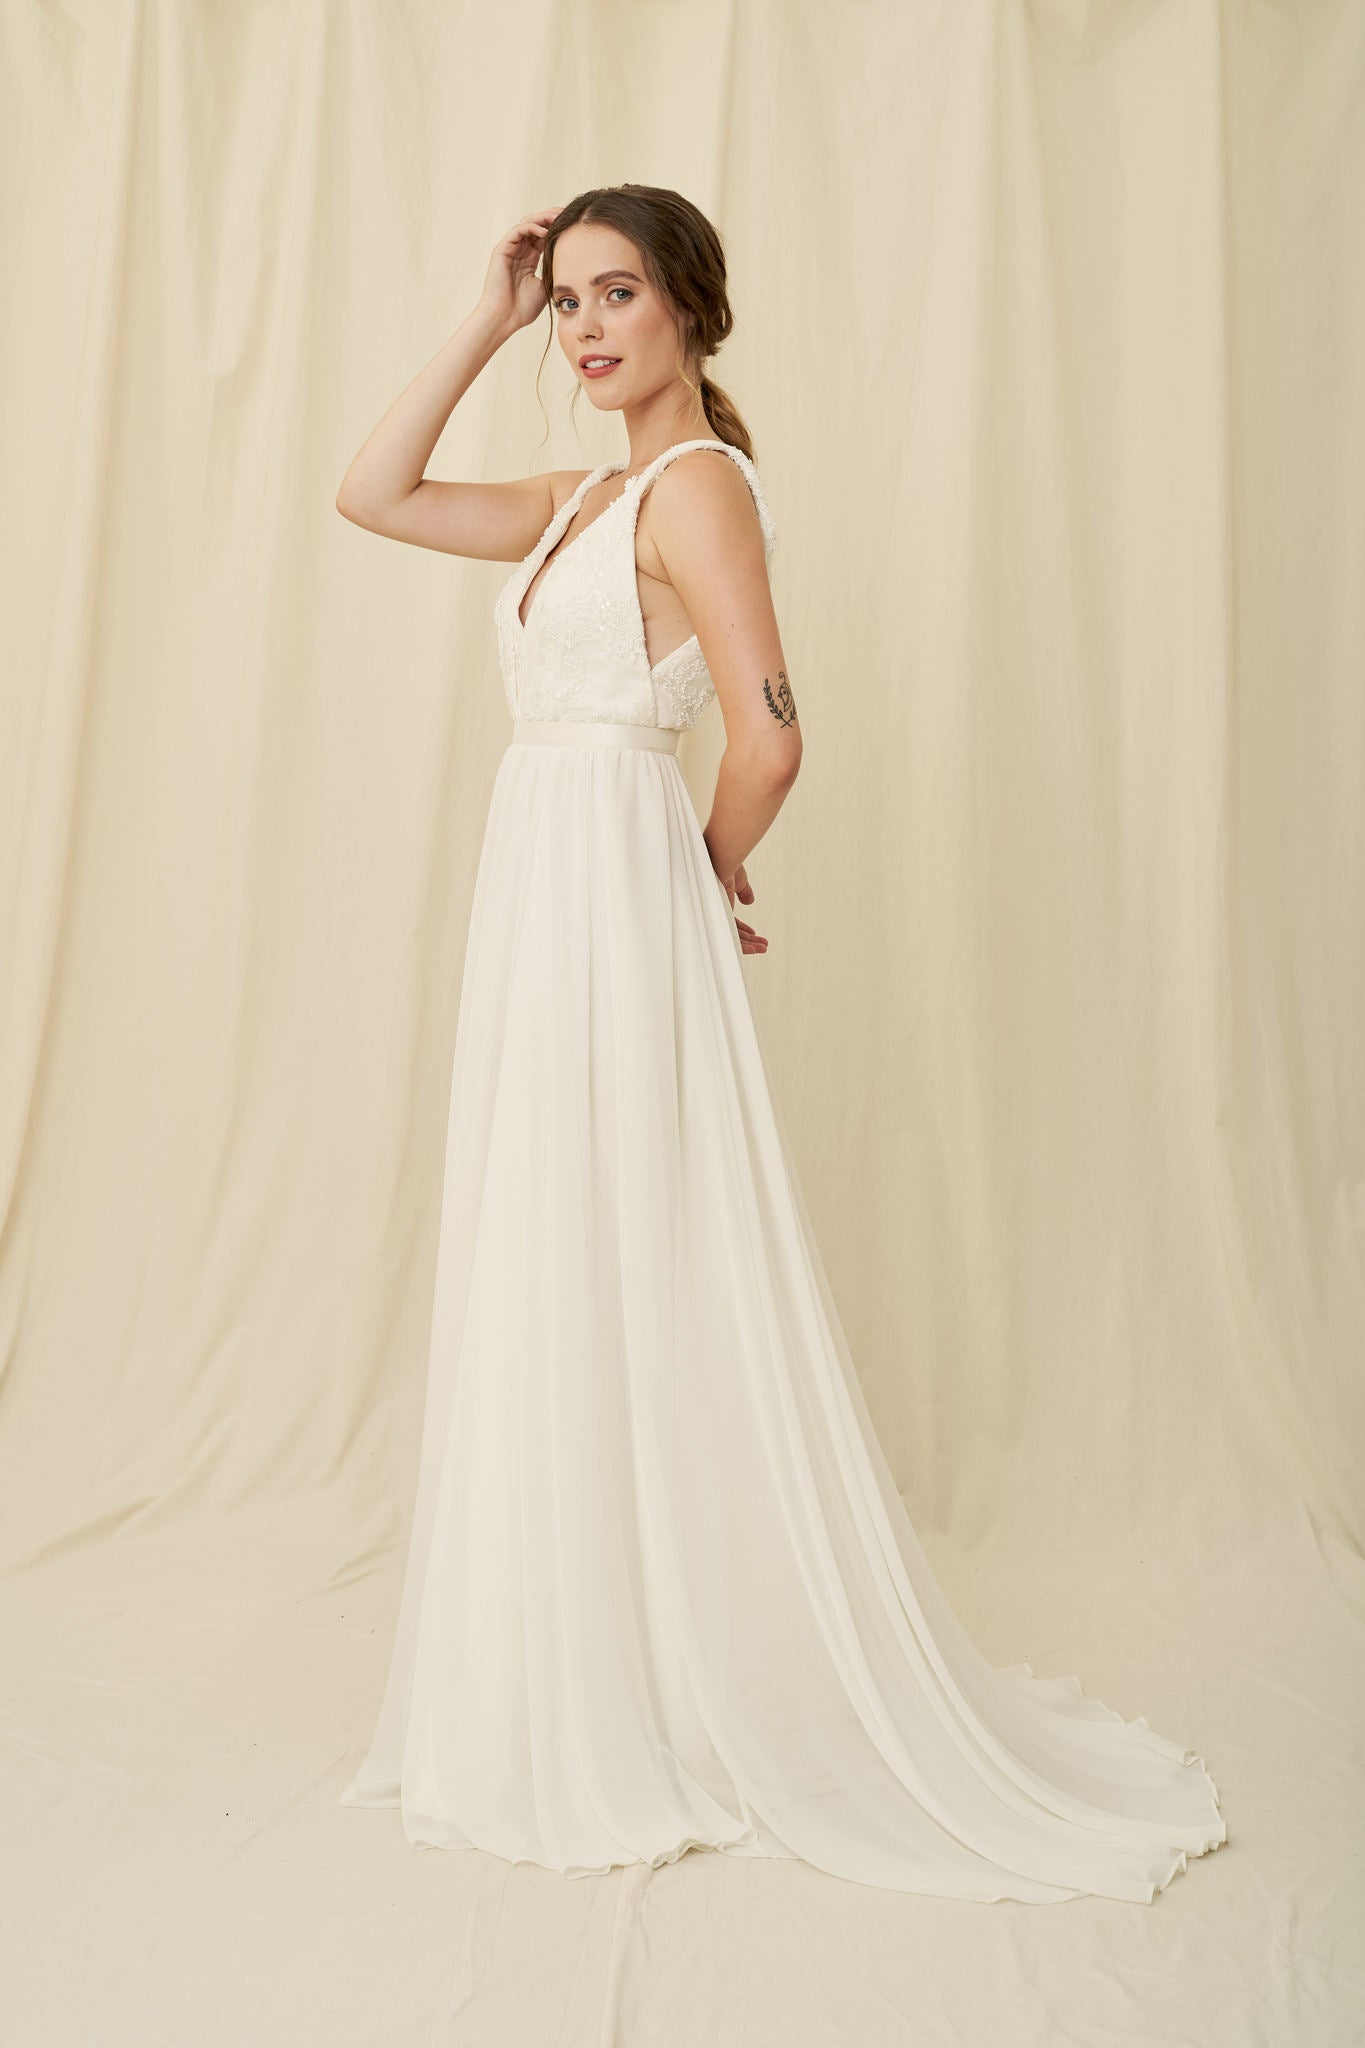 A lightweight wedding gown with a chiffon skirt and beaded lace lace on a plunging bodice with twisted straps by Truvelle